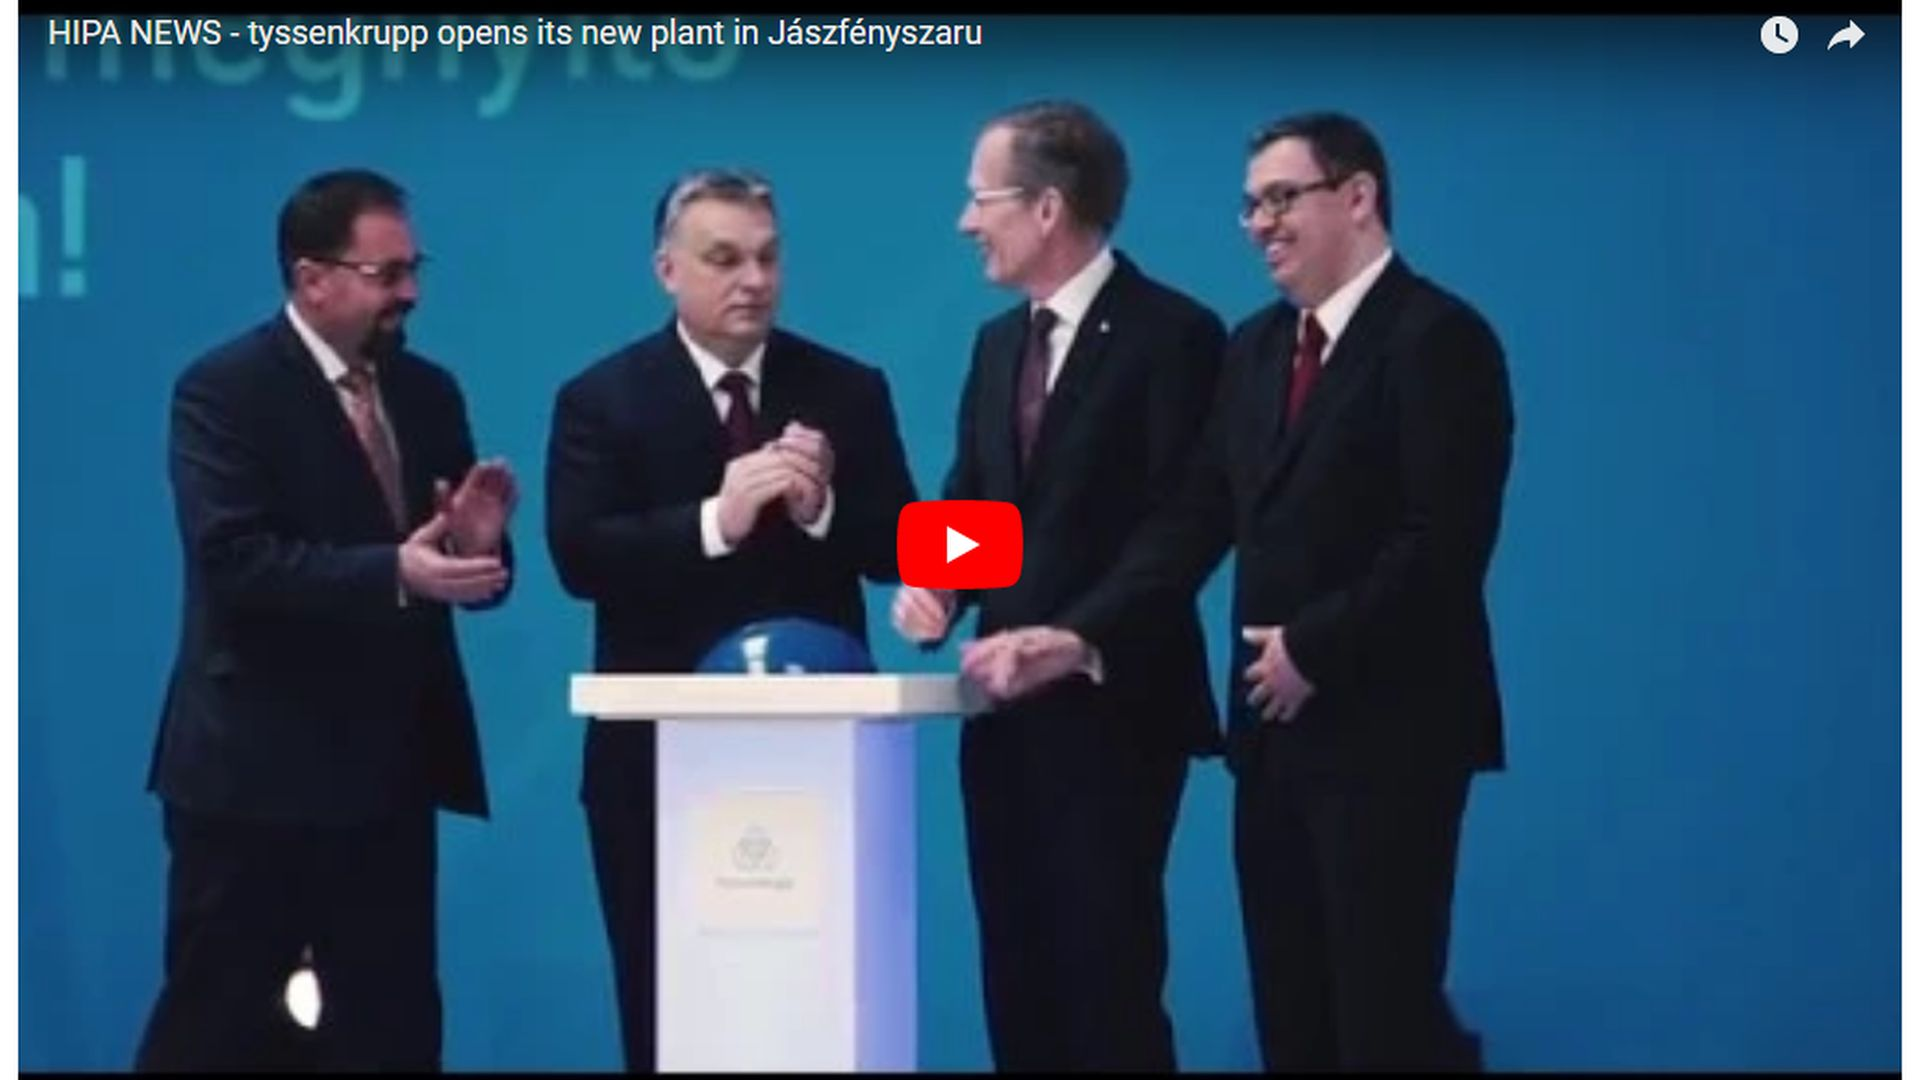 Hungary is a strategic partner for thyssenkrupp - VIDEO REPORT